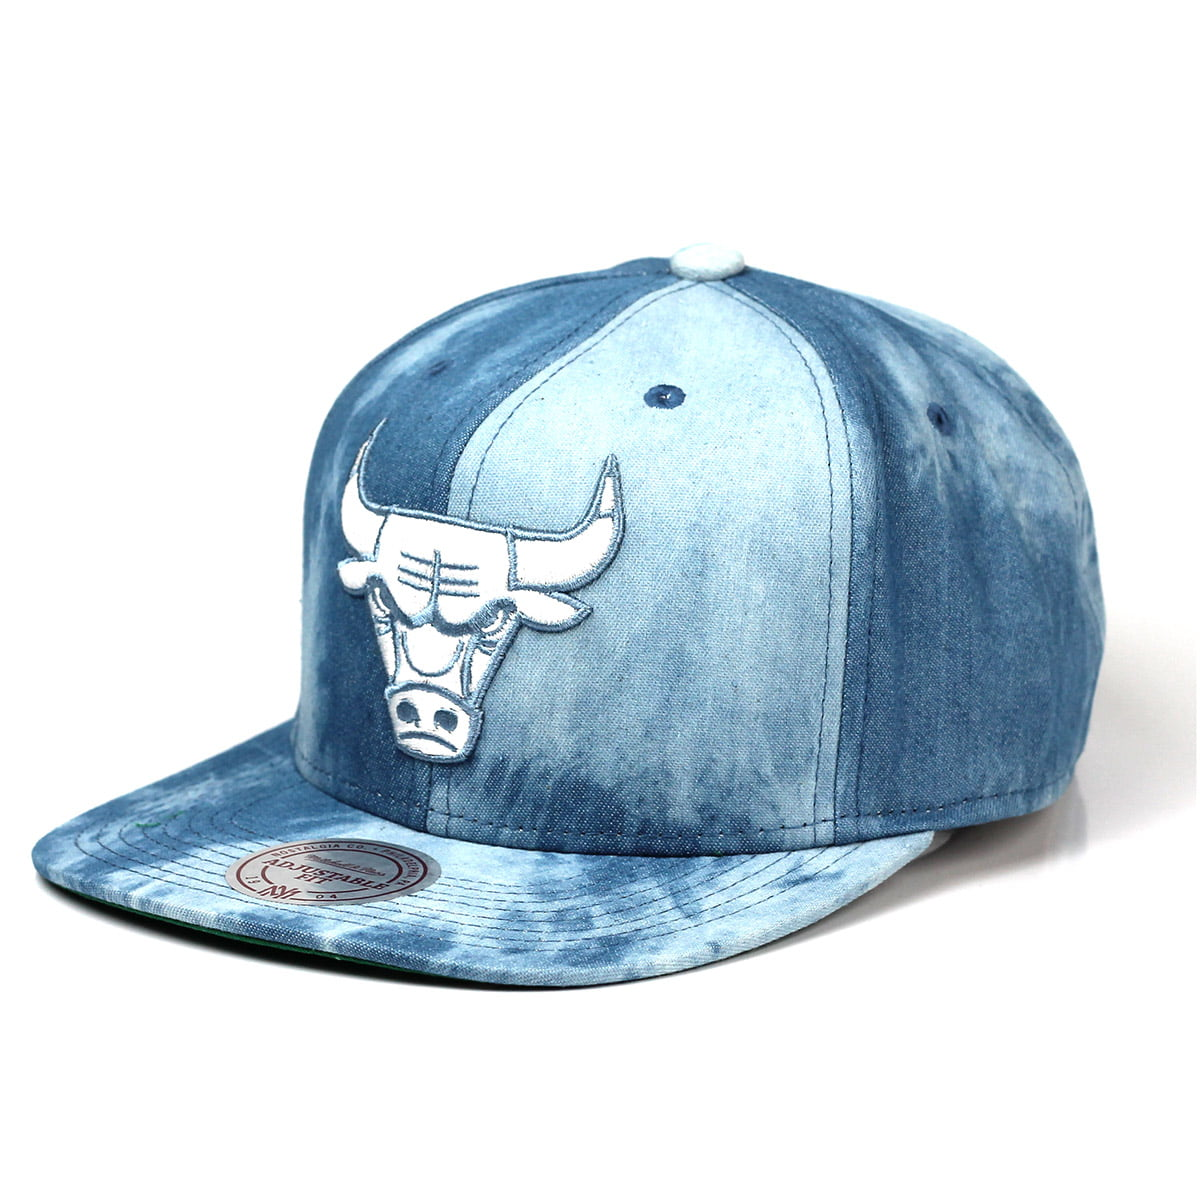 Bone Chicago Bulls Mitchell and Ness denim snapback